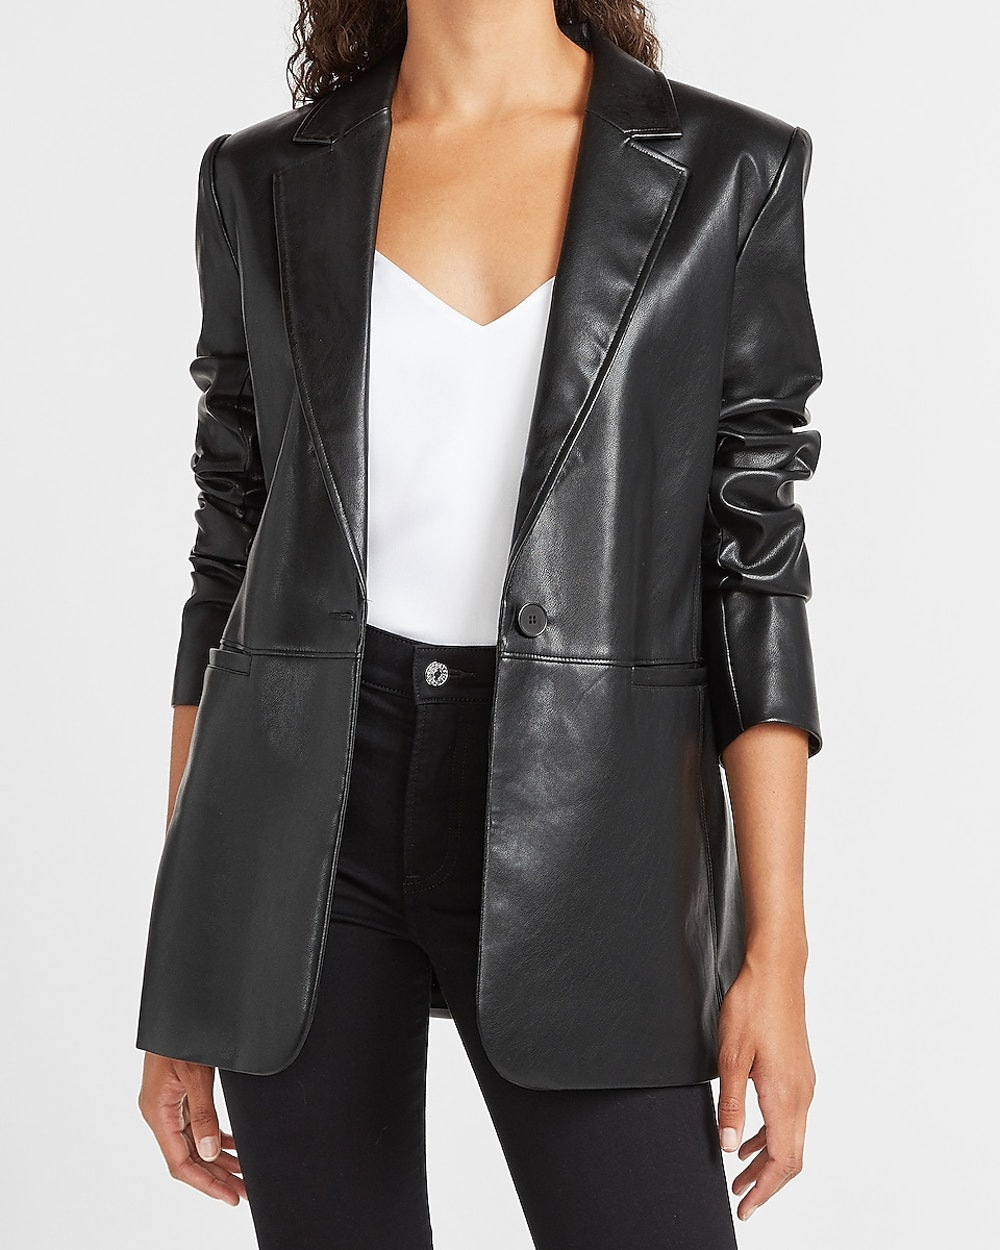 Vegan Leather One Button Long Sleeve Blazer